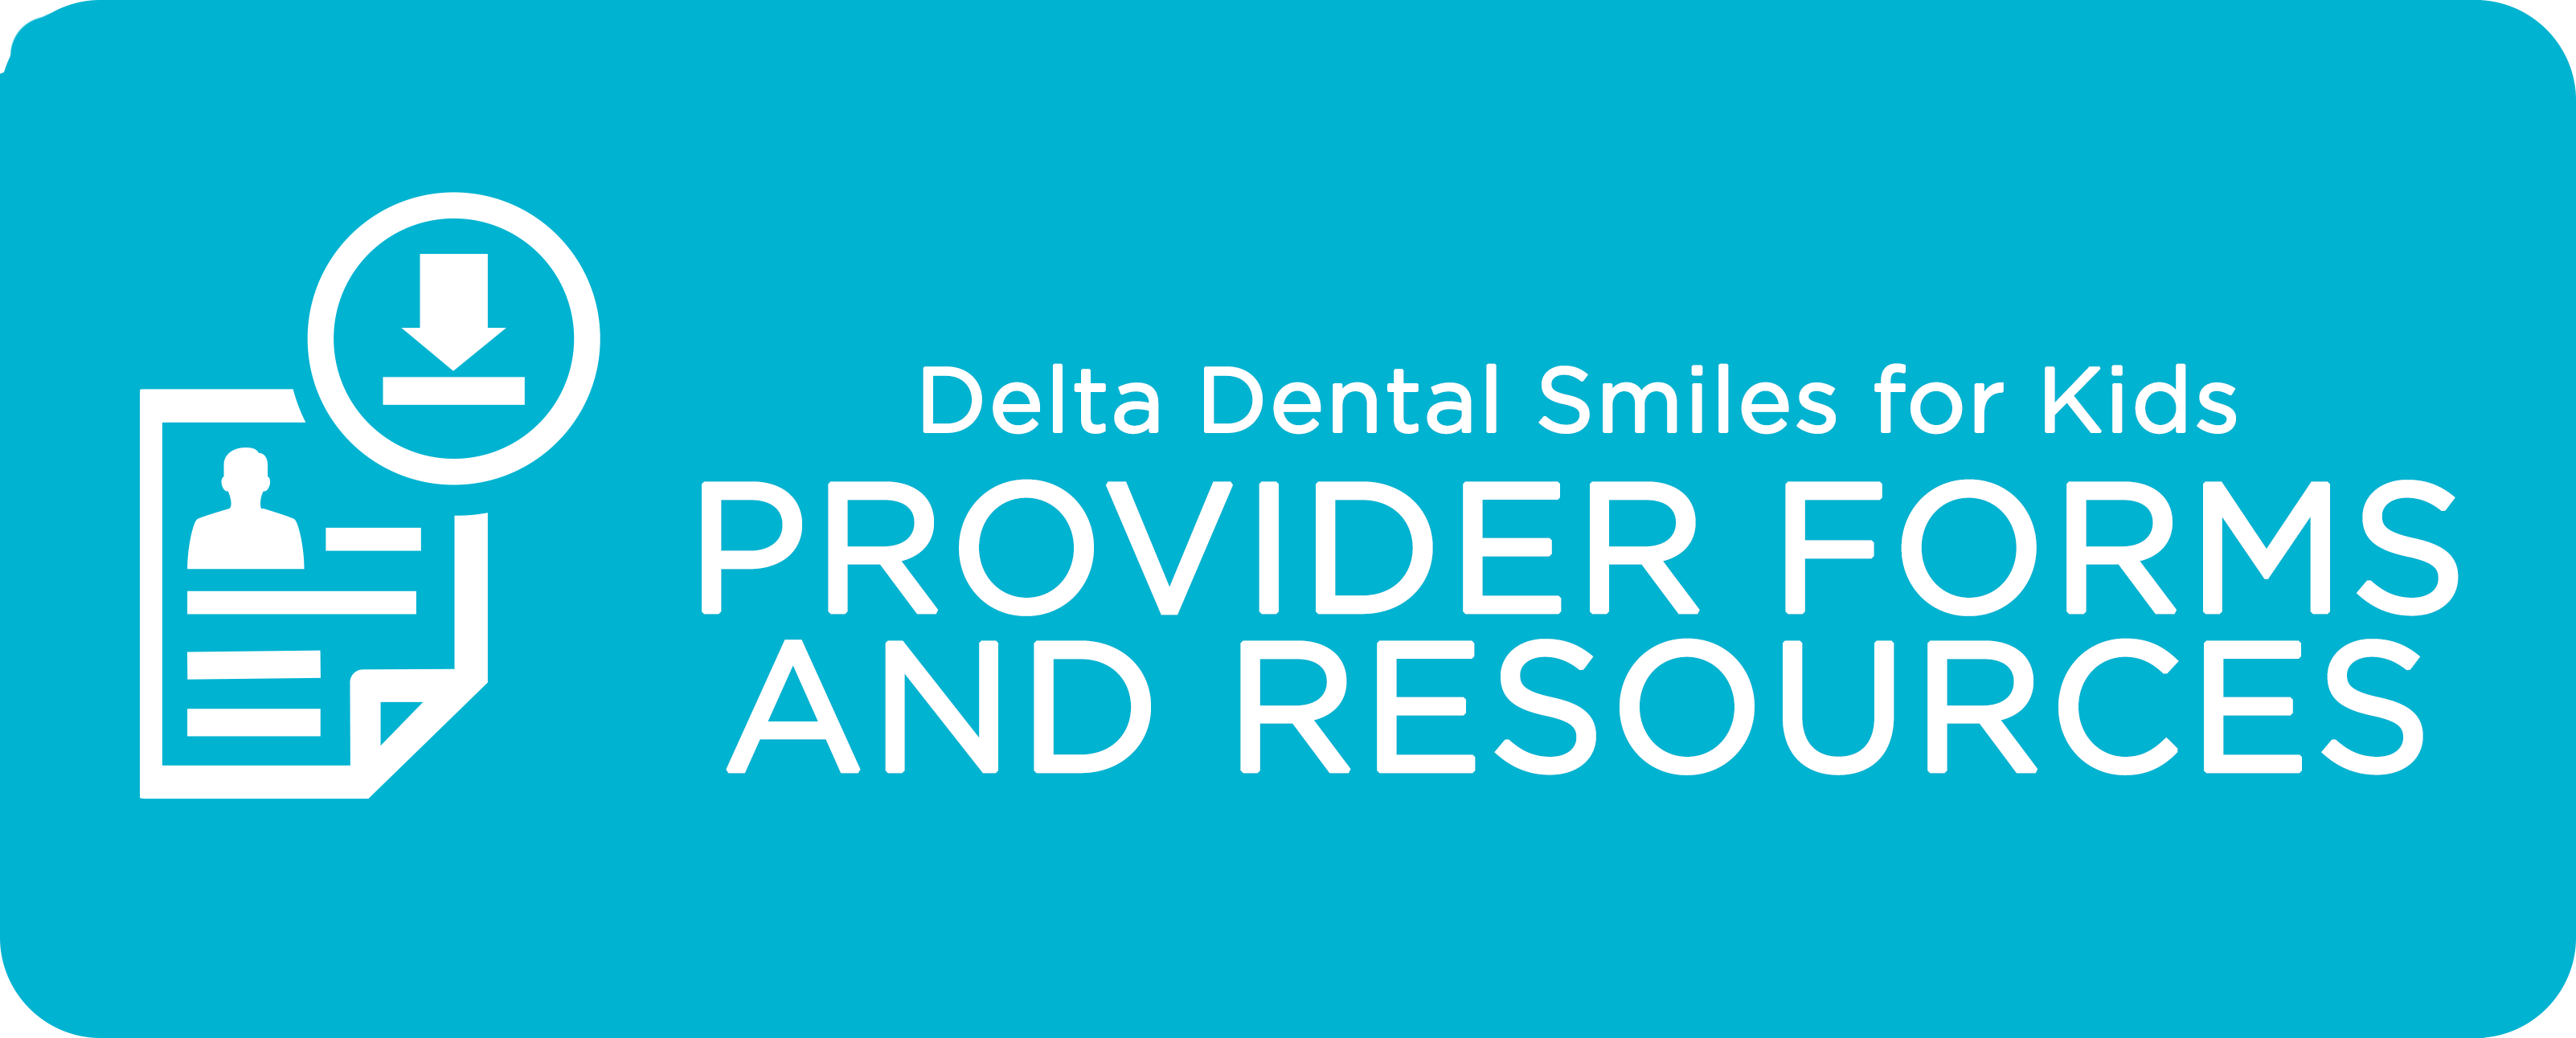 Delta Dental Smiles for Kids Provider Forms